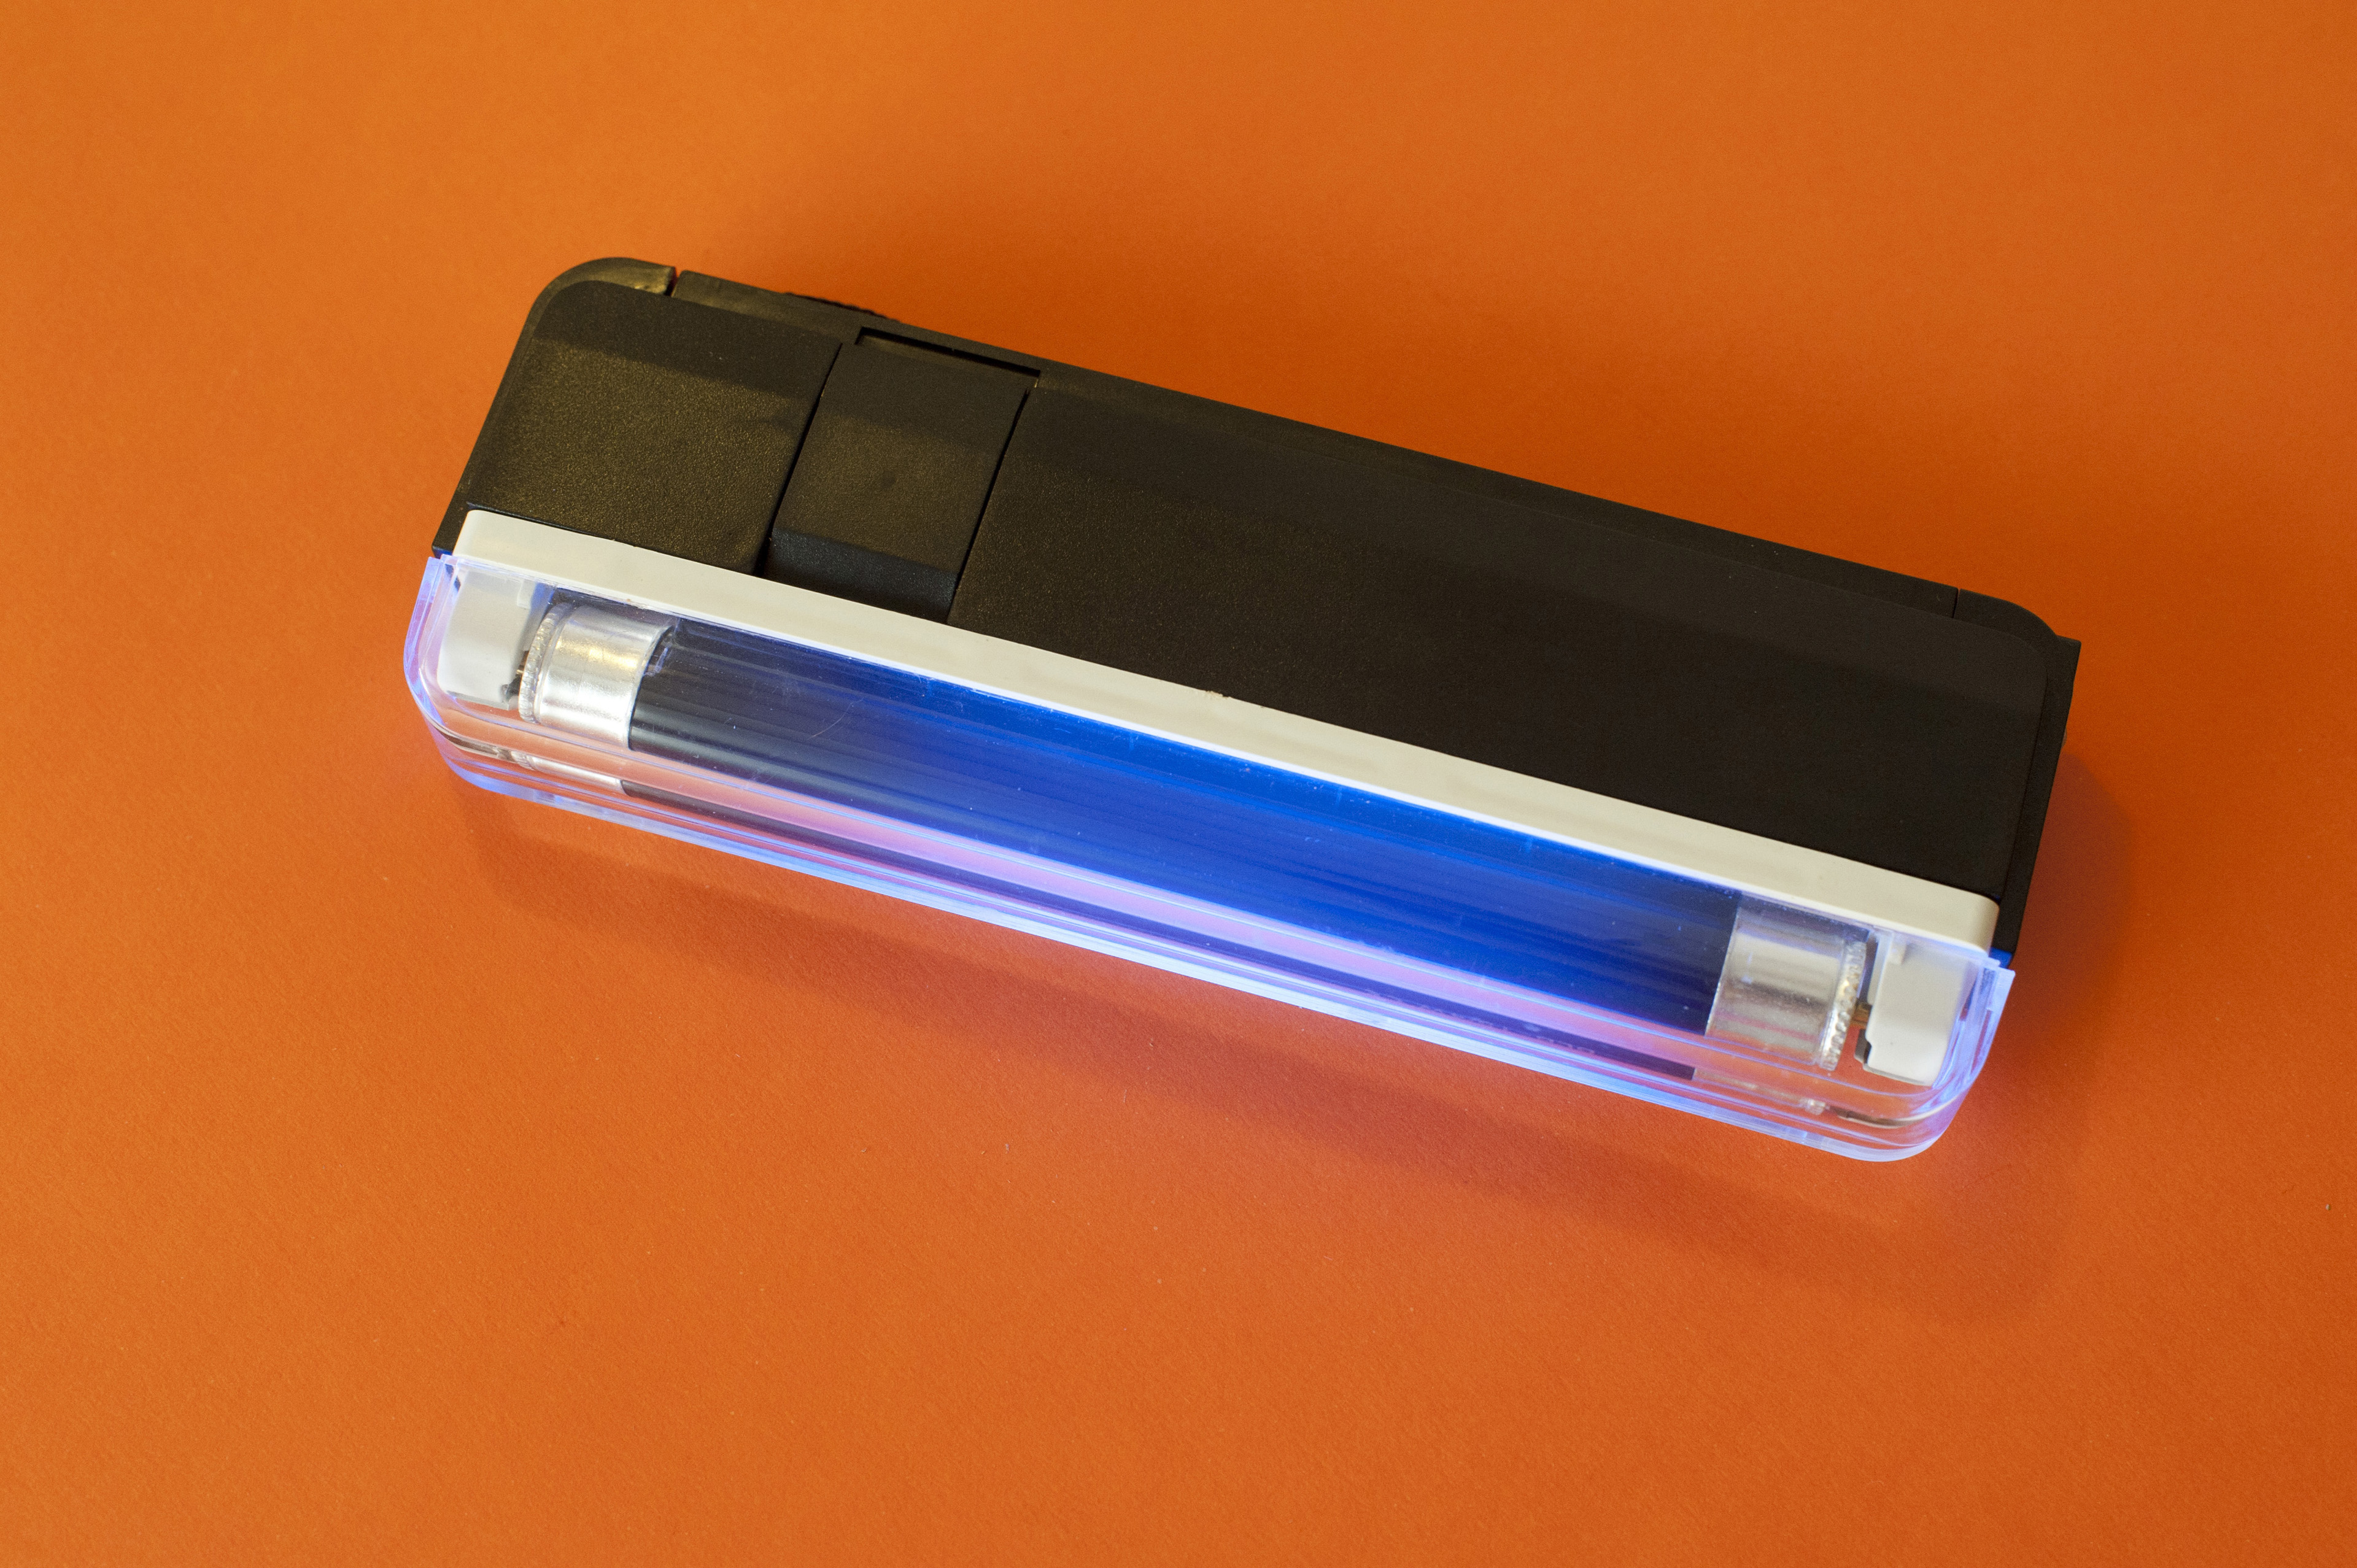 UV lamp with an ultraviolet tube emitting electromagnetic radiation between 4 and 400nm used to detect fluorescence from pathogens or in security from special marker inks